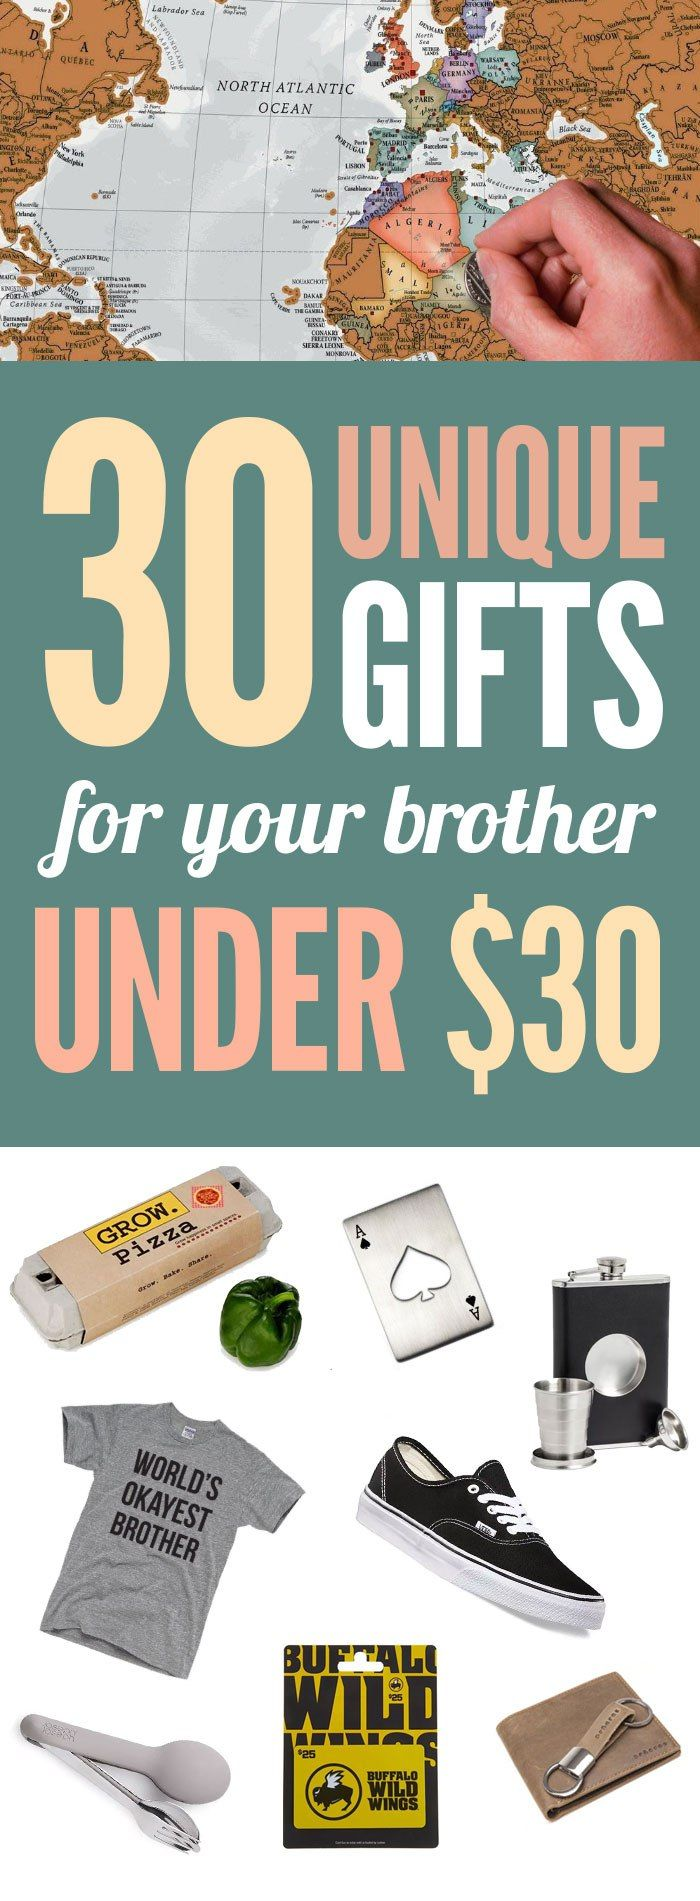 30 Unique Gifts For Brothers All Under $30